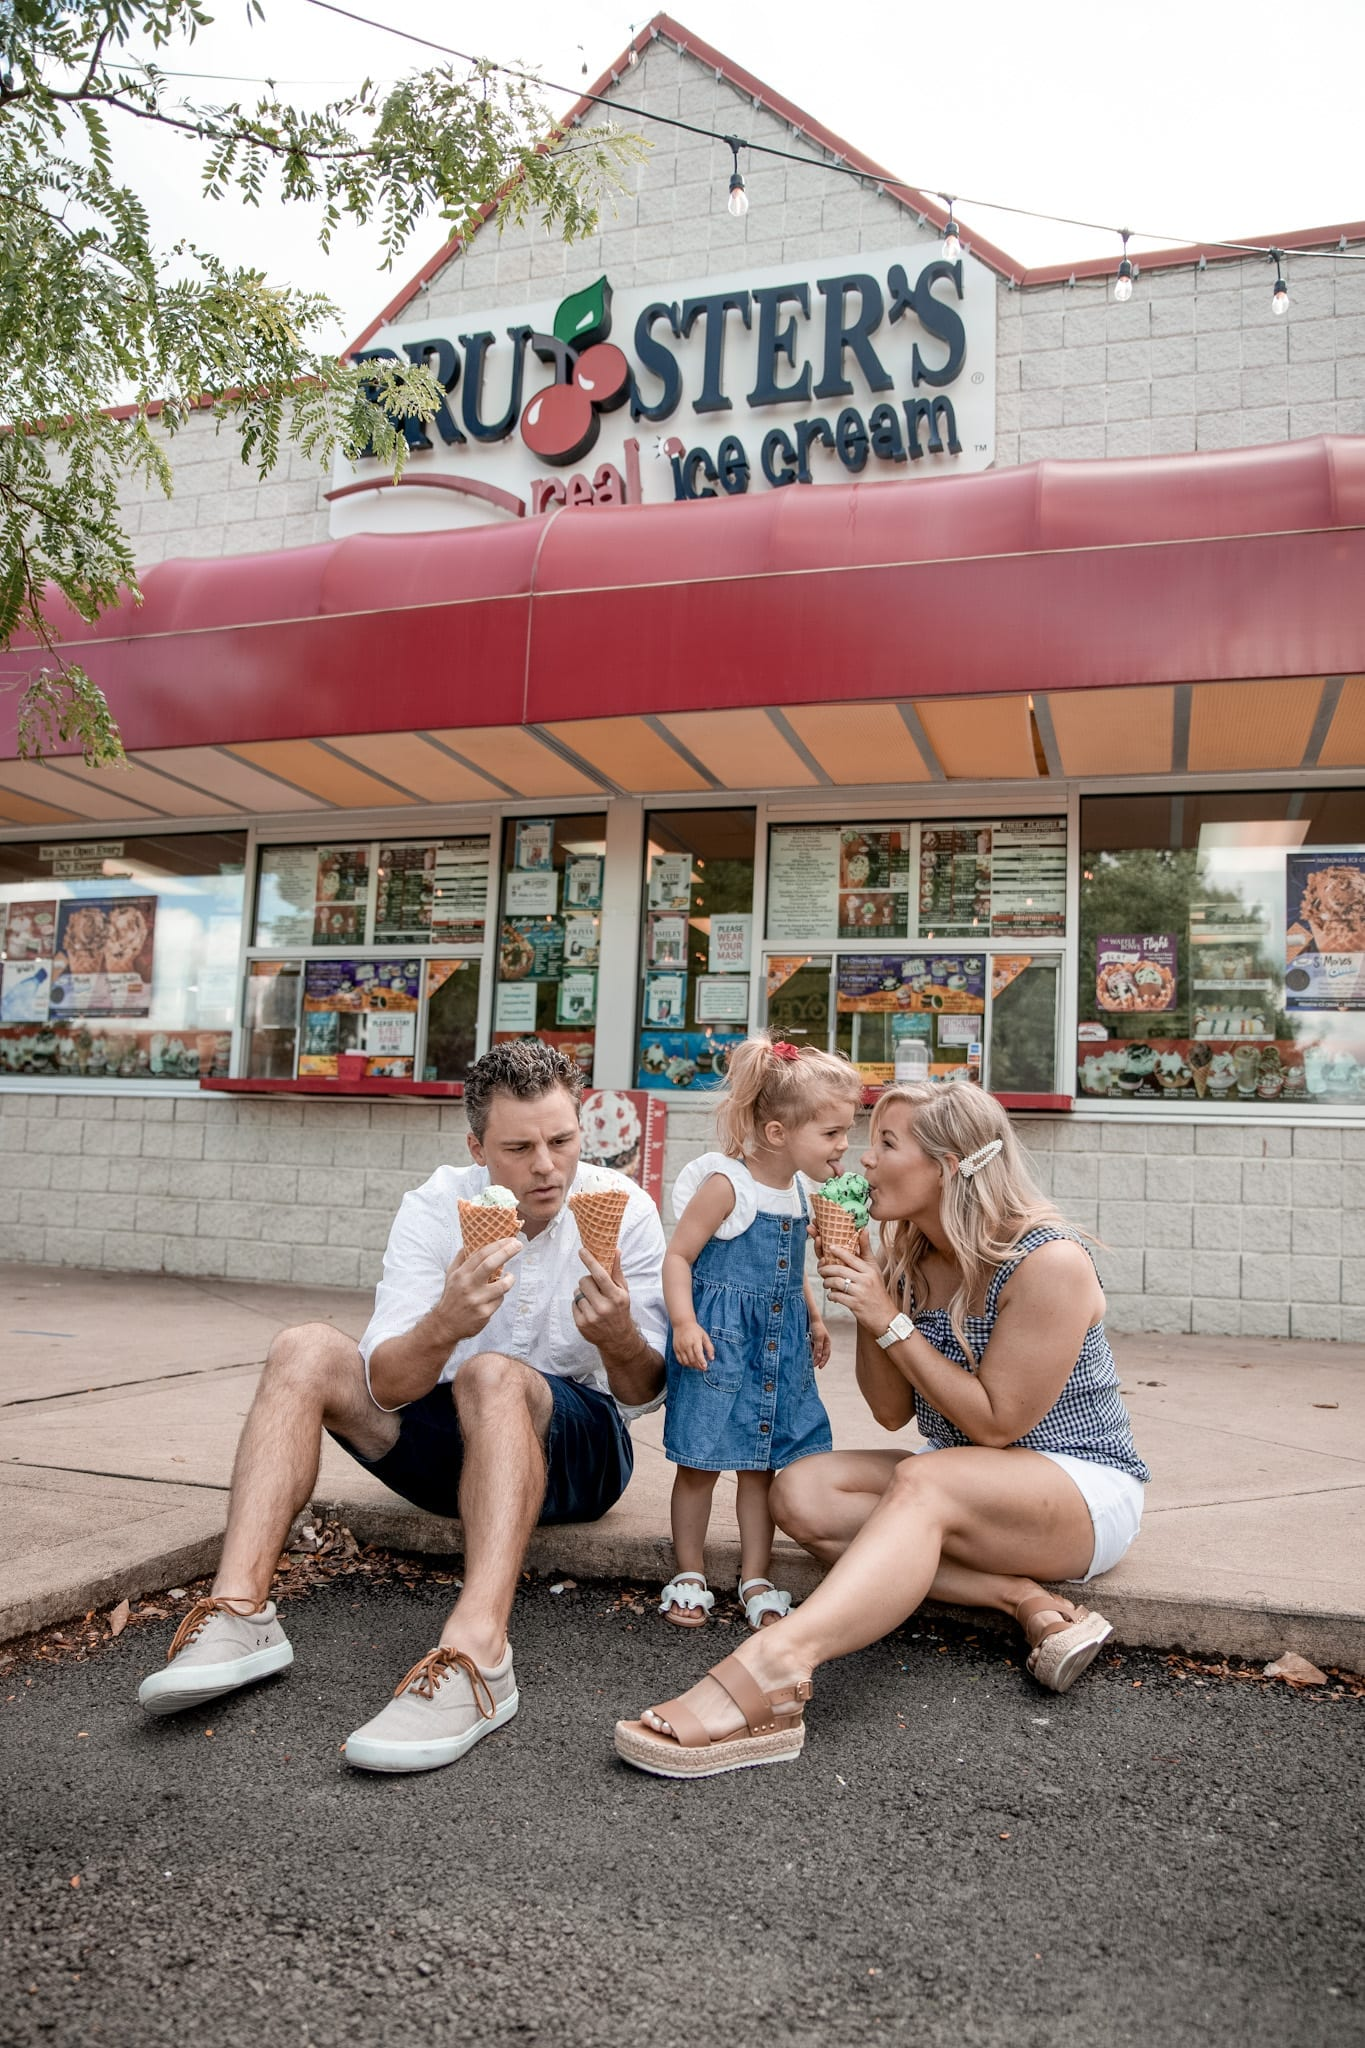 Making Life's Special Moments Sweeter with Brusters Real Ice Cream!